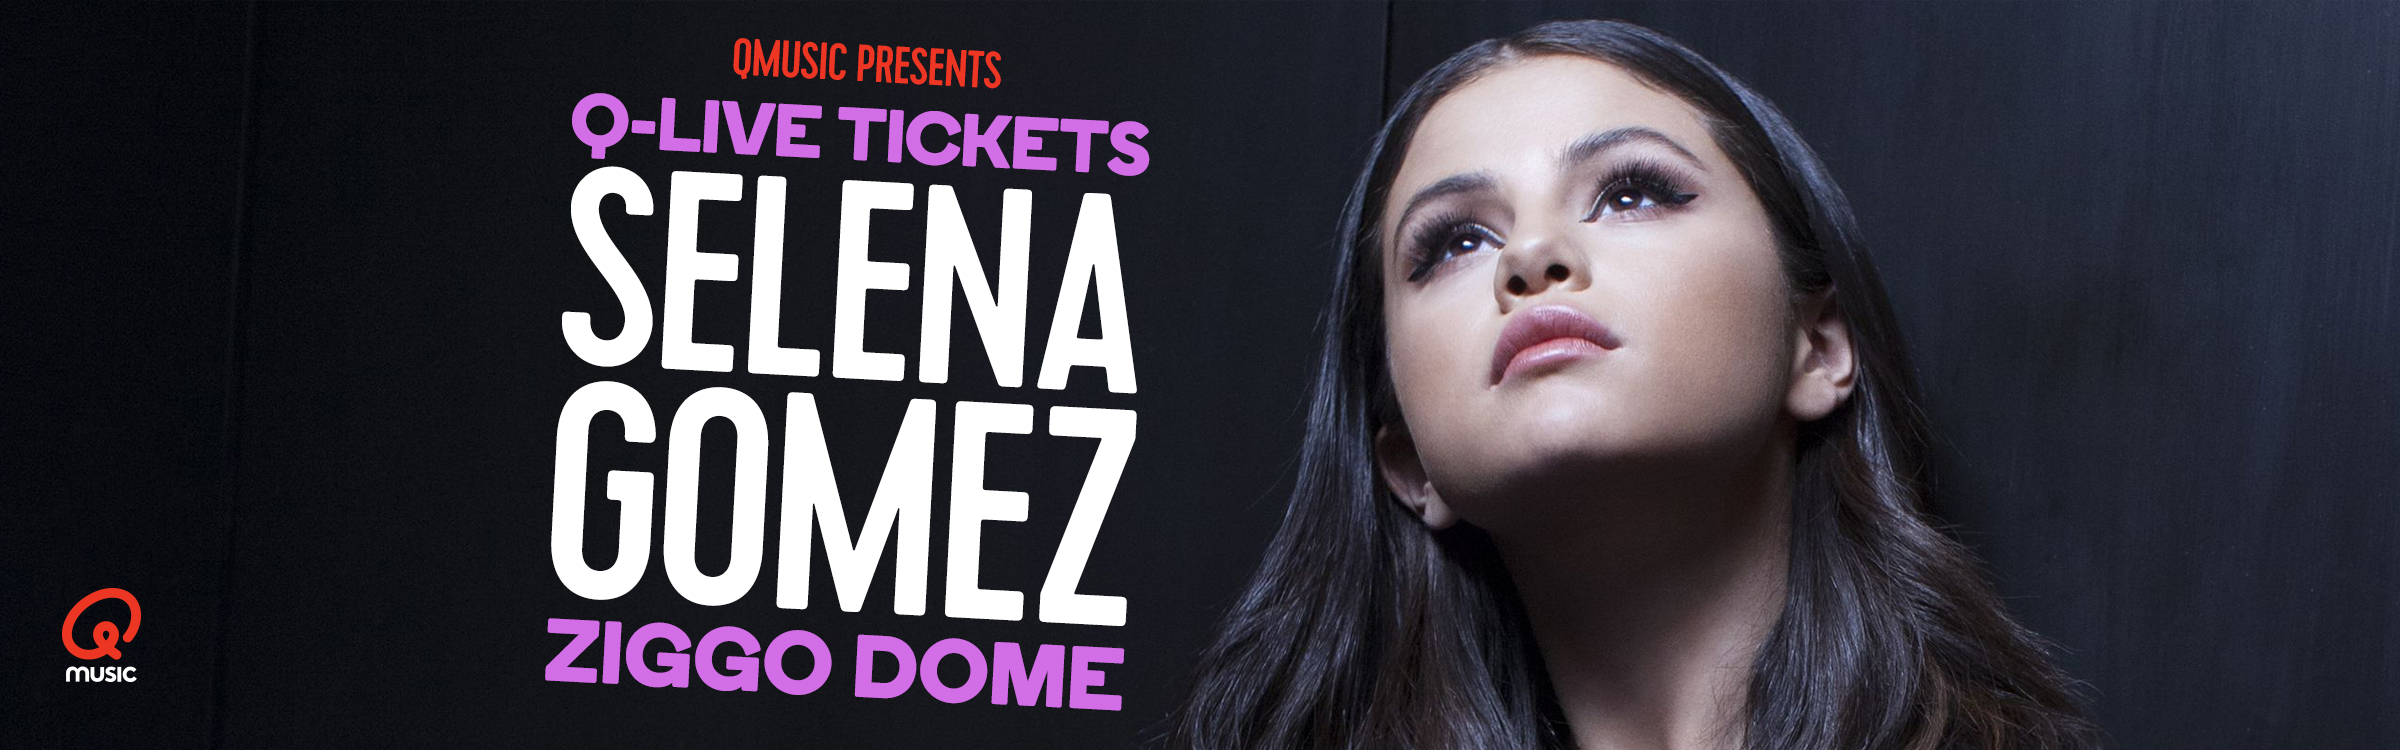 Qmusic actionheader selenag